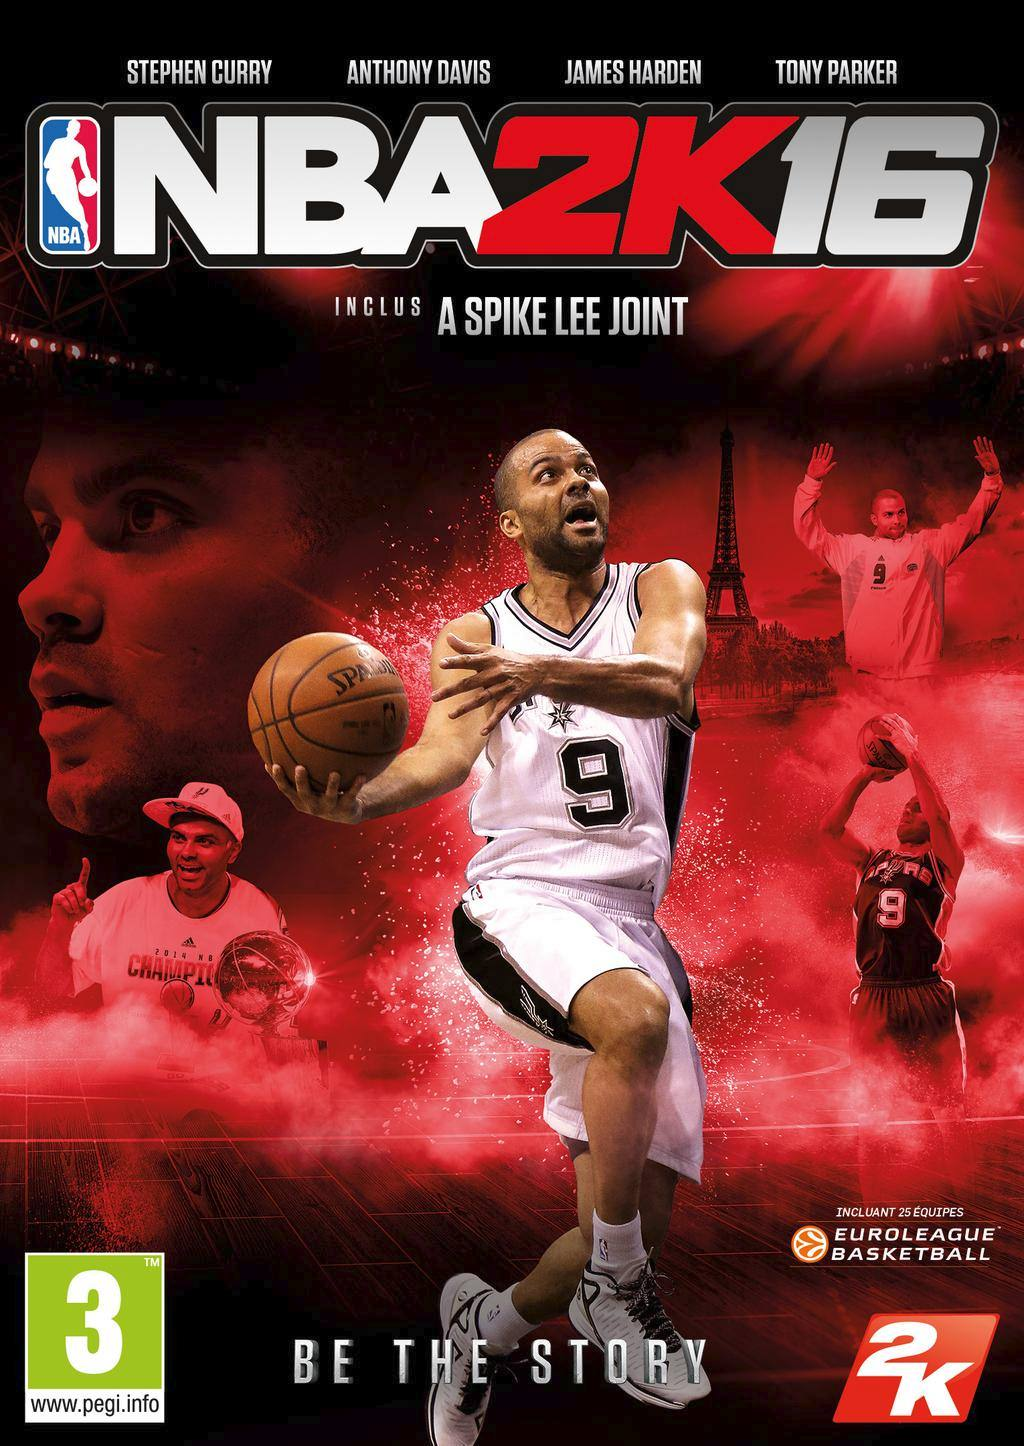 NBA 2K16 will have 25 Euroleague teams and Tony Parker on Cover